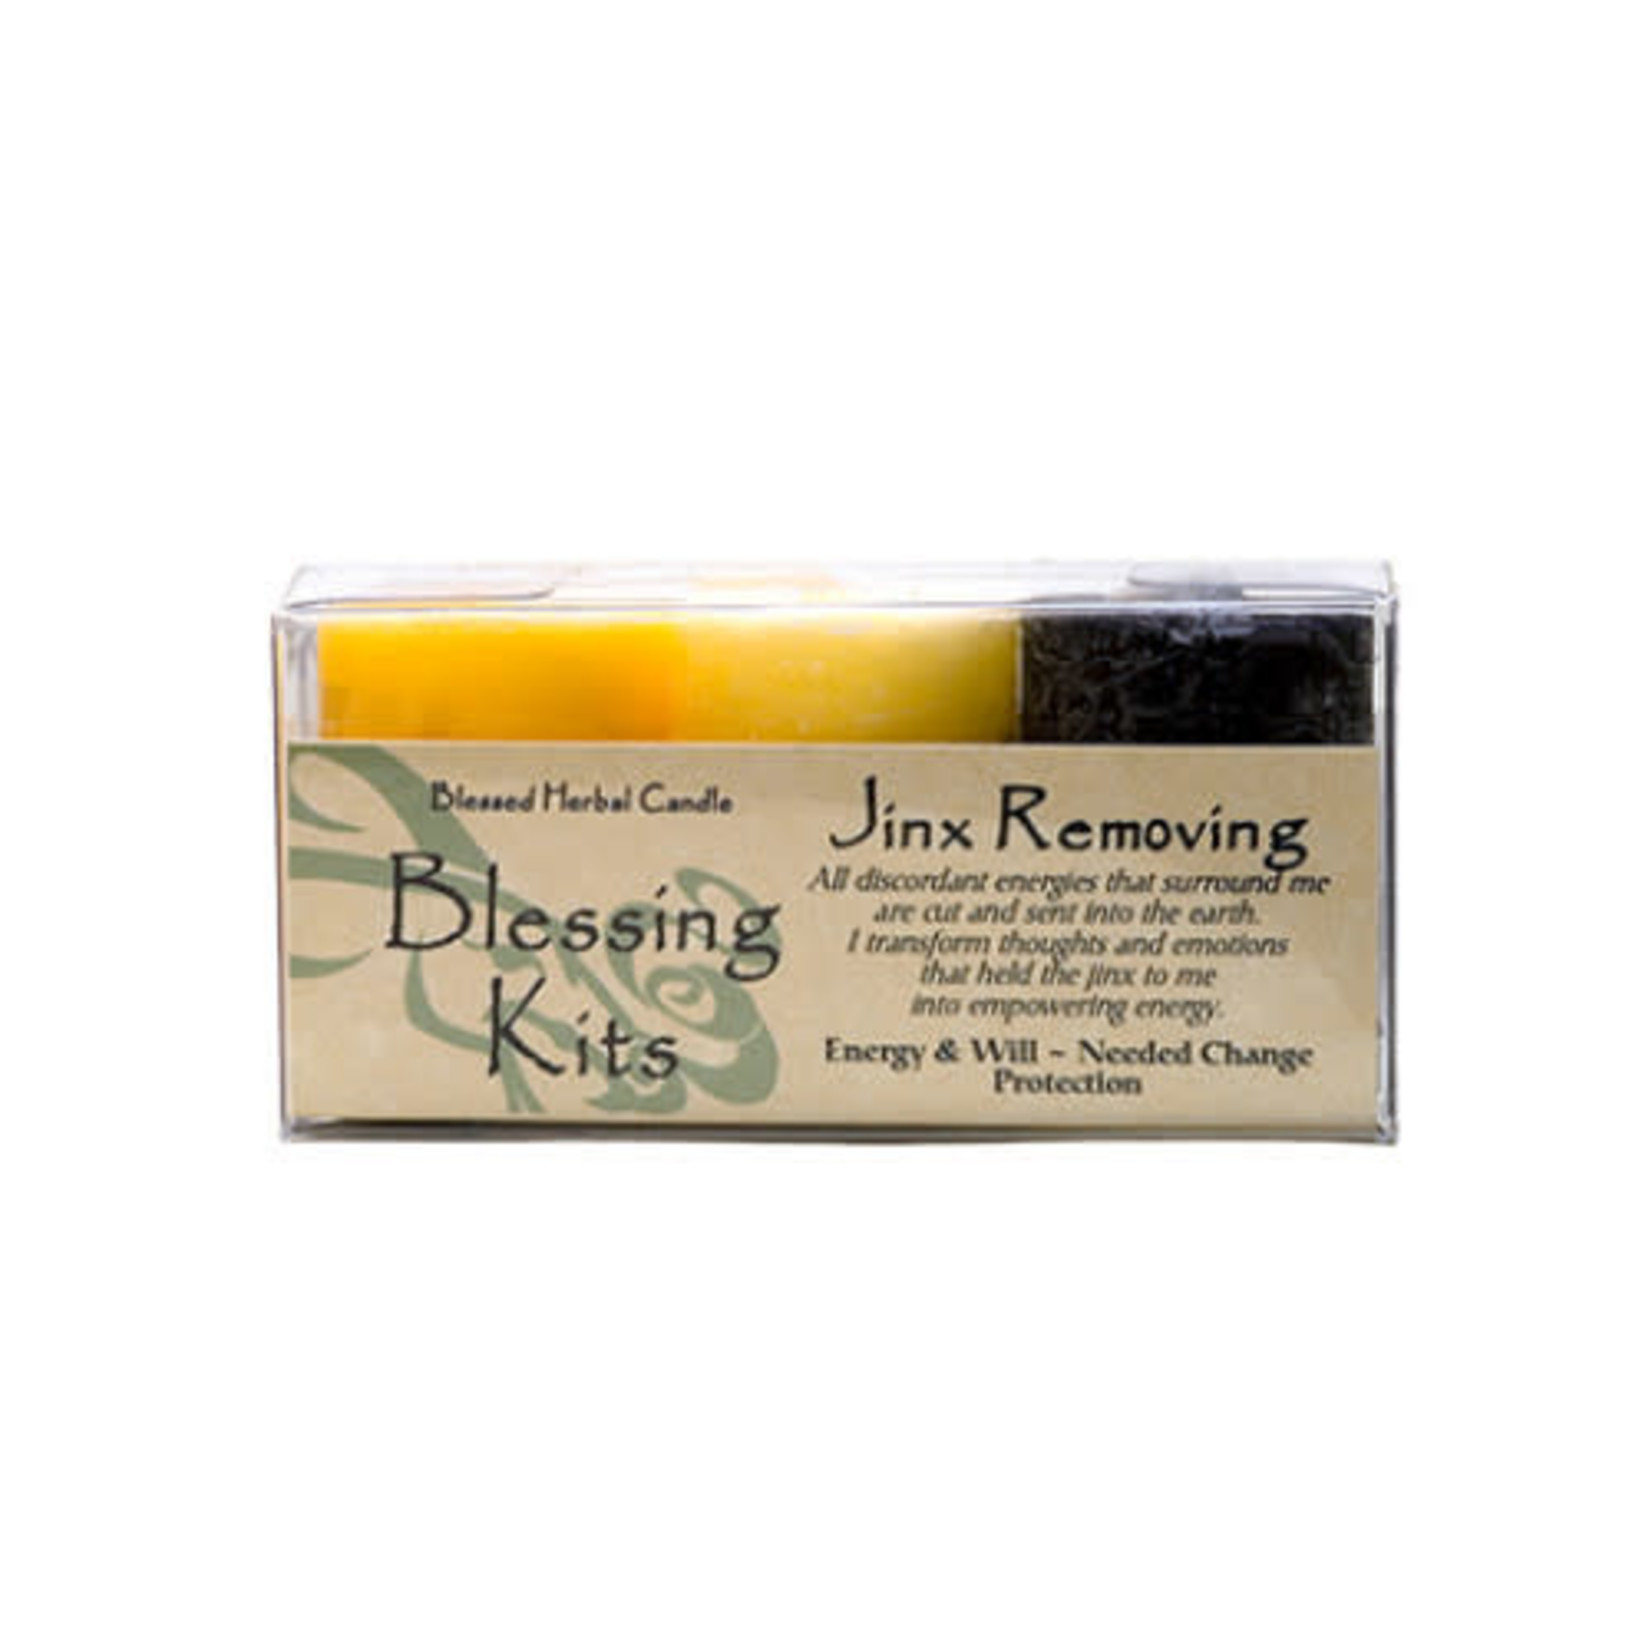 Blessed Kit Herbal Jinx Removing Candle Kit